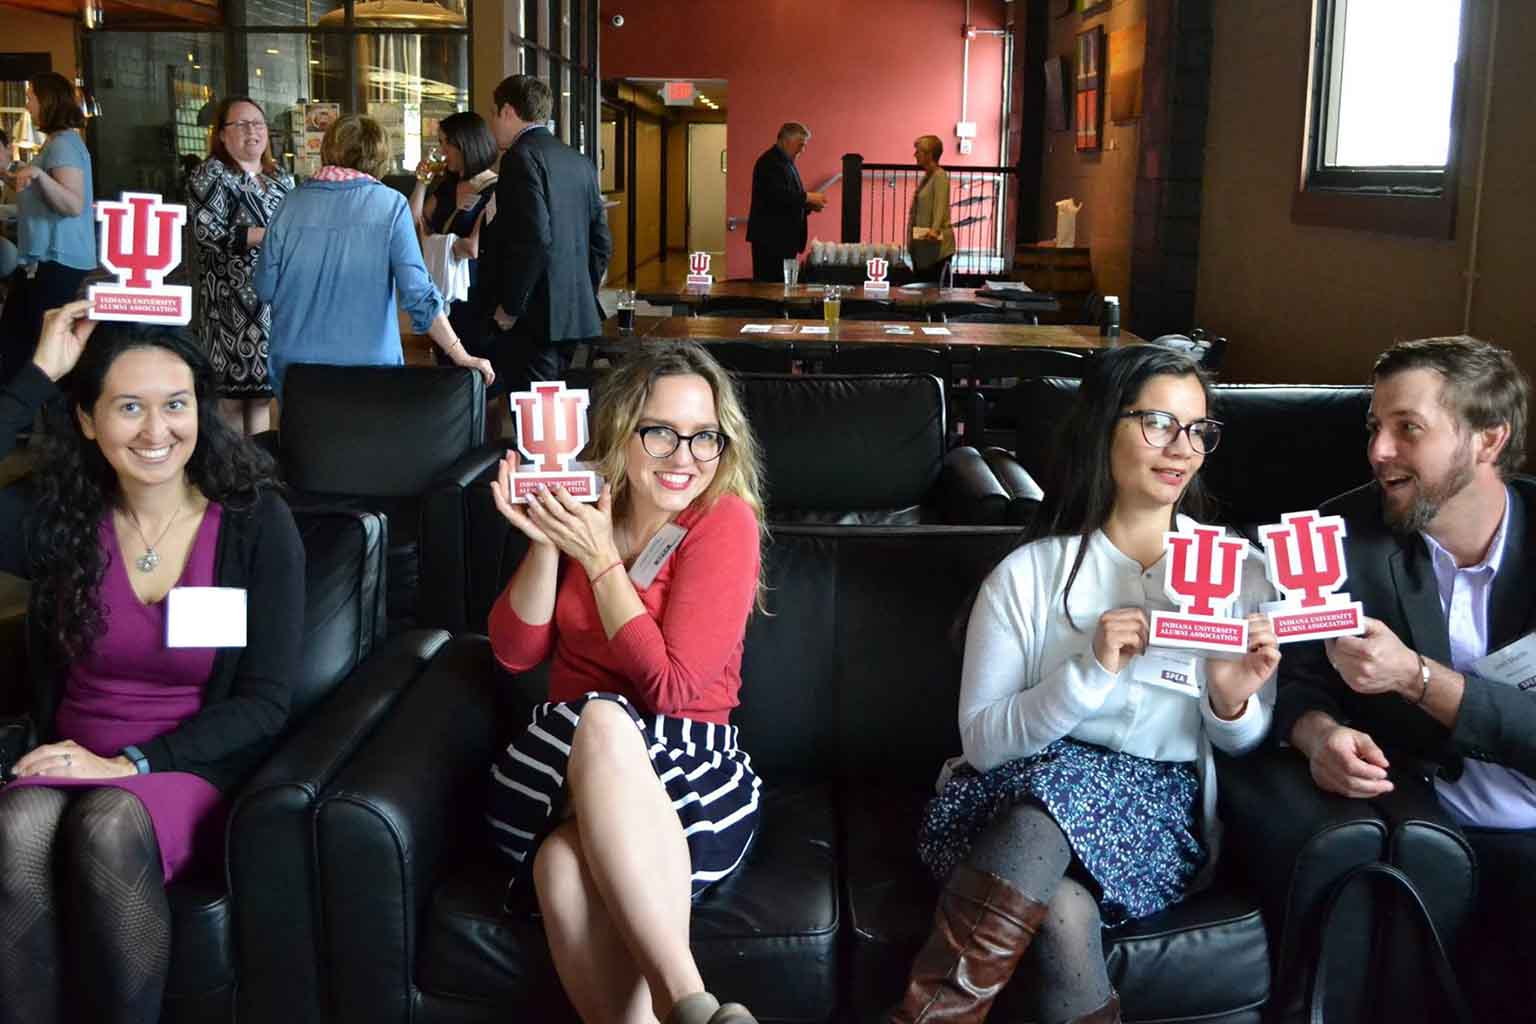 People pose with IU table tents in a bar or lounge.